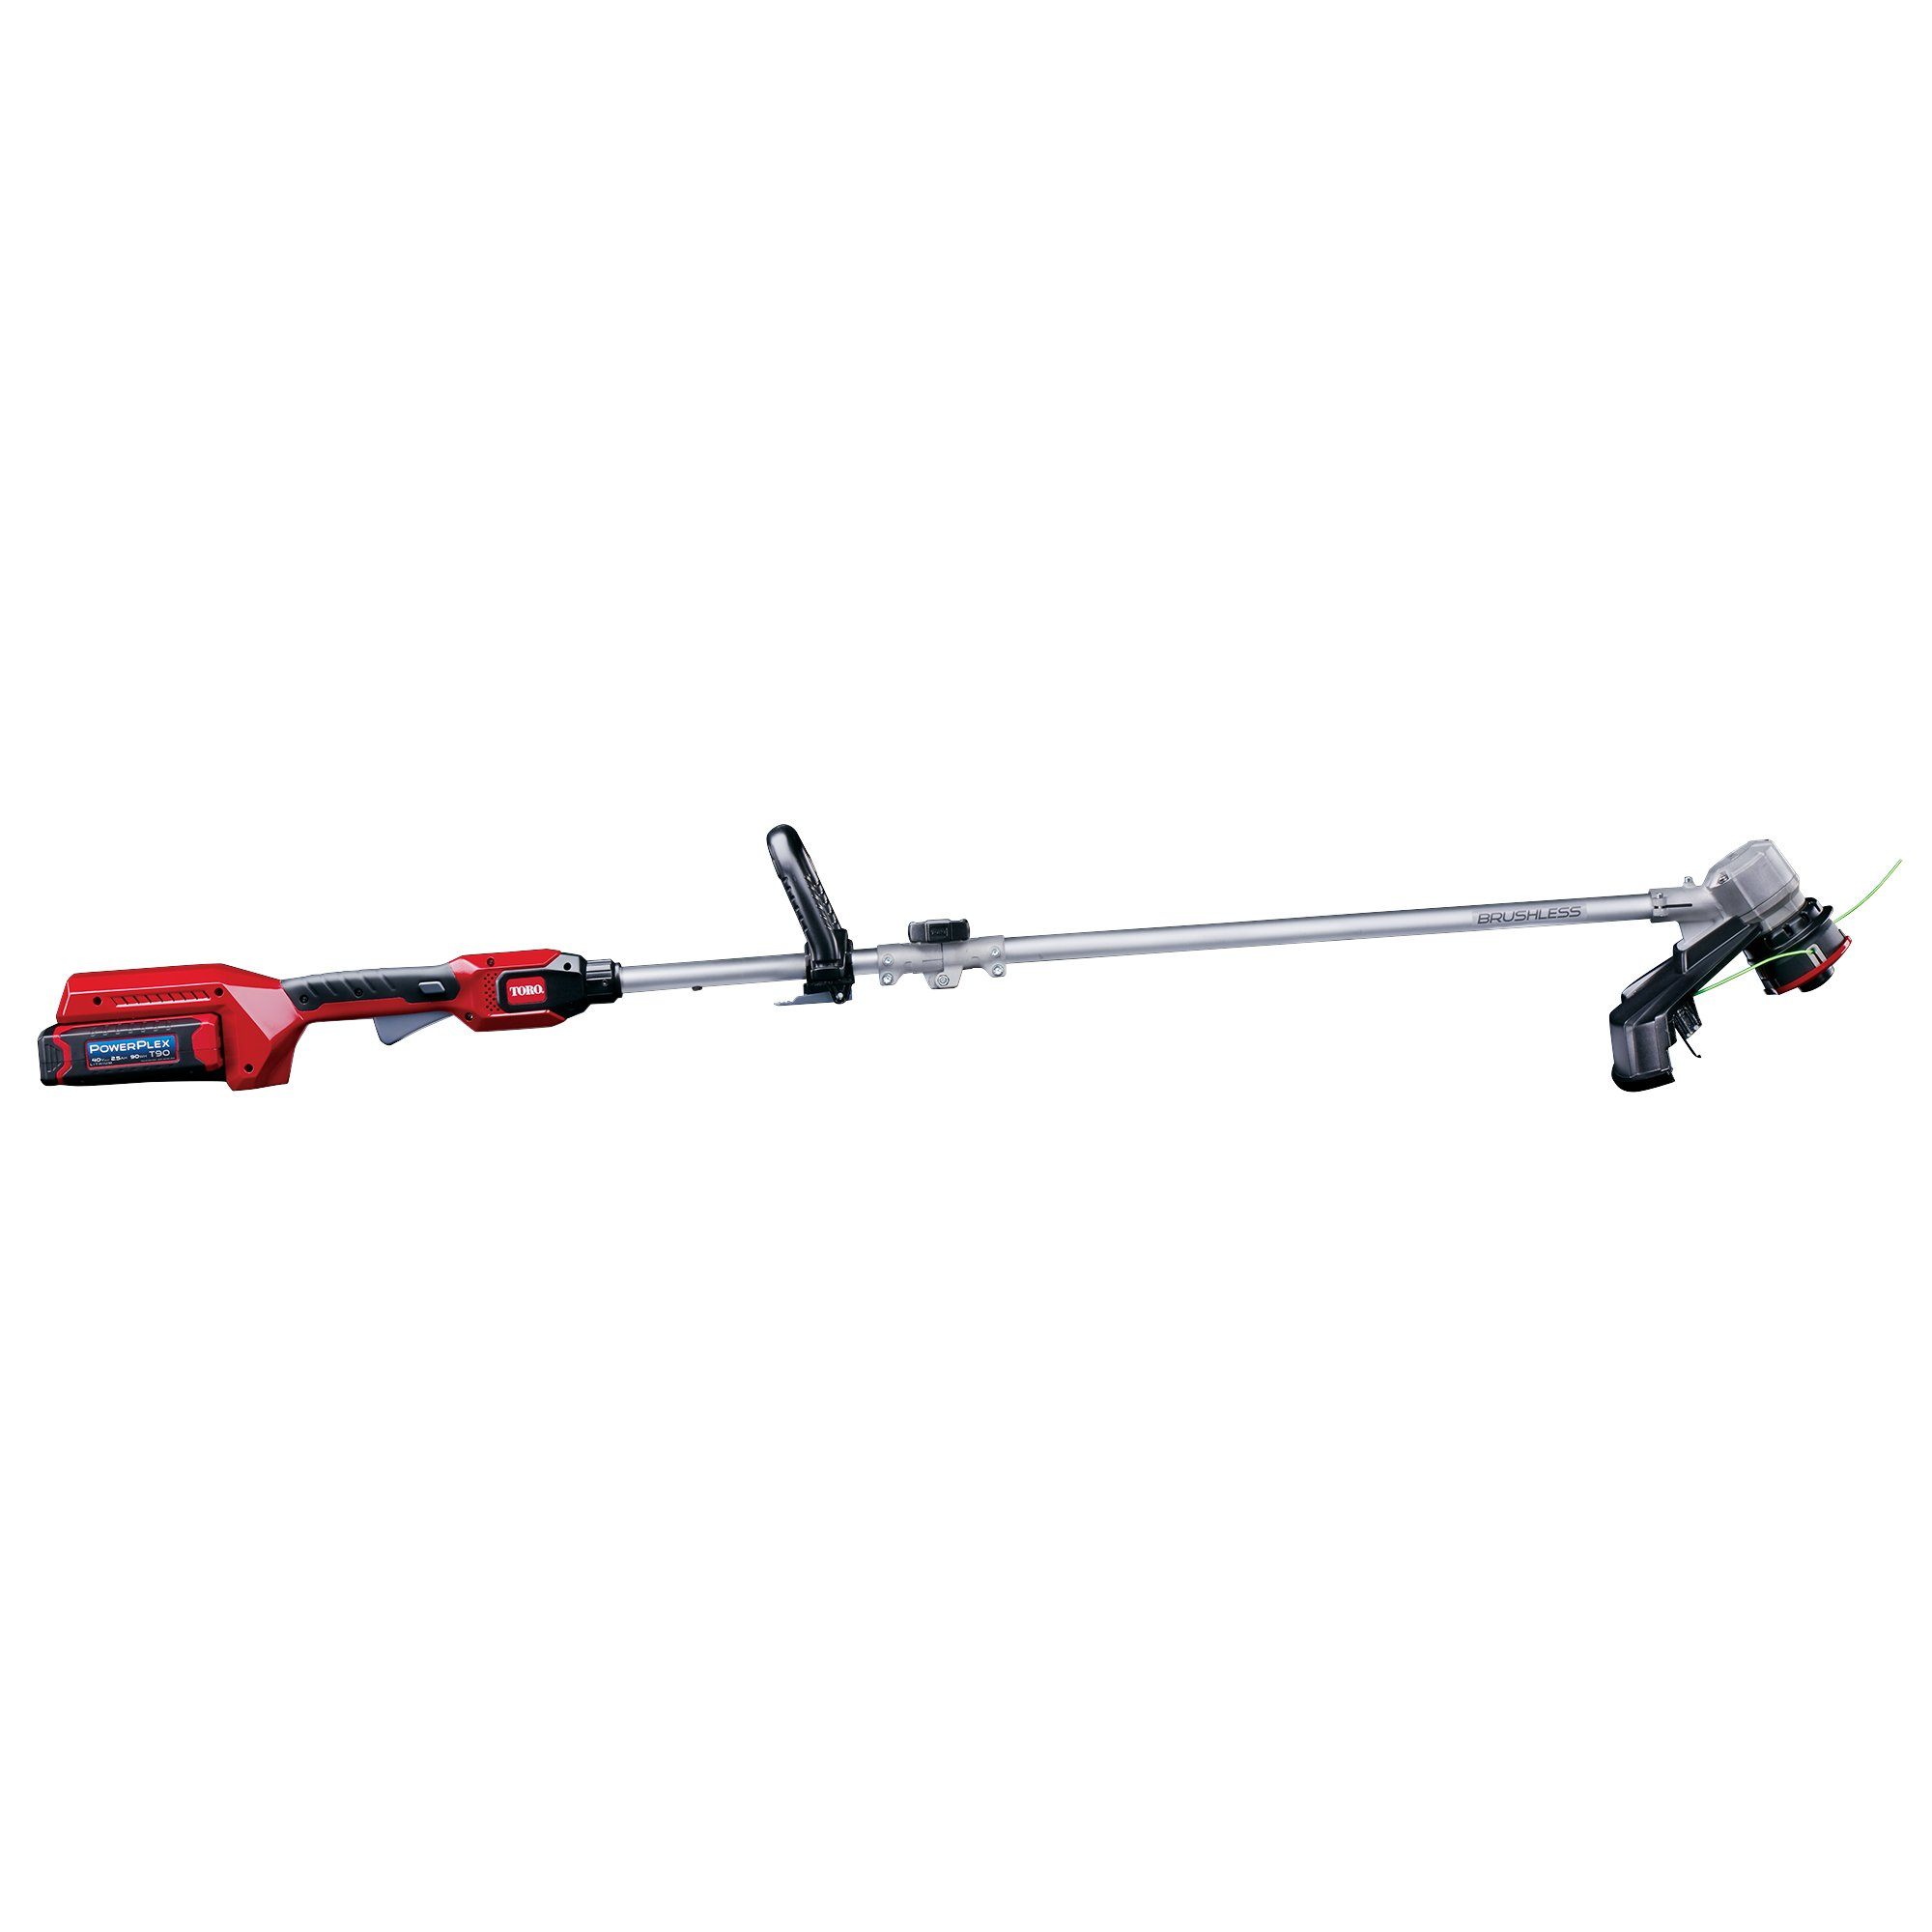 Toro PowerPlex 51482 Brushless 40V Lithium Ion 14'' Cordless String Trimmer, 2.5 Ah Battery & Charger Included